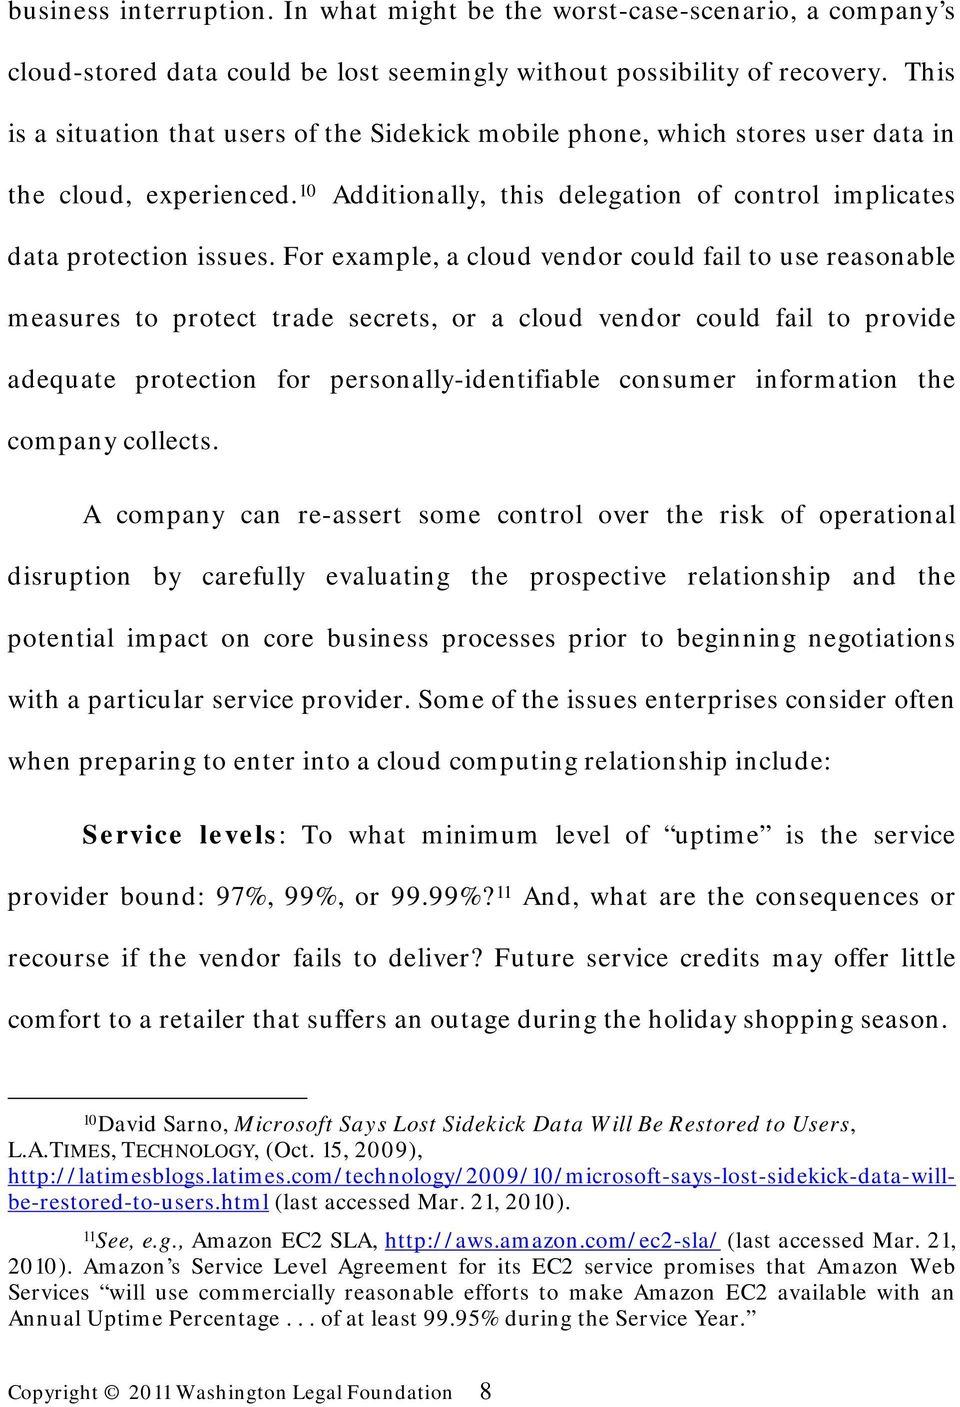 For example, a cloud vendor could fail to use reasonable measures to protect trade secrets, or a cloud vendor could fail to provide adequate protection for personally-identifiable consumer